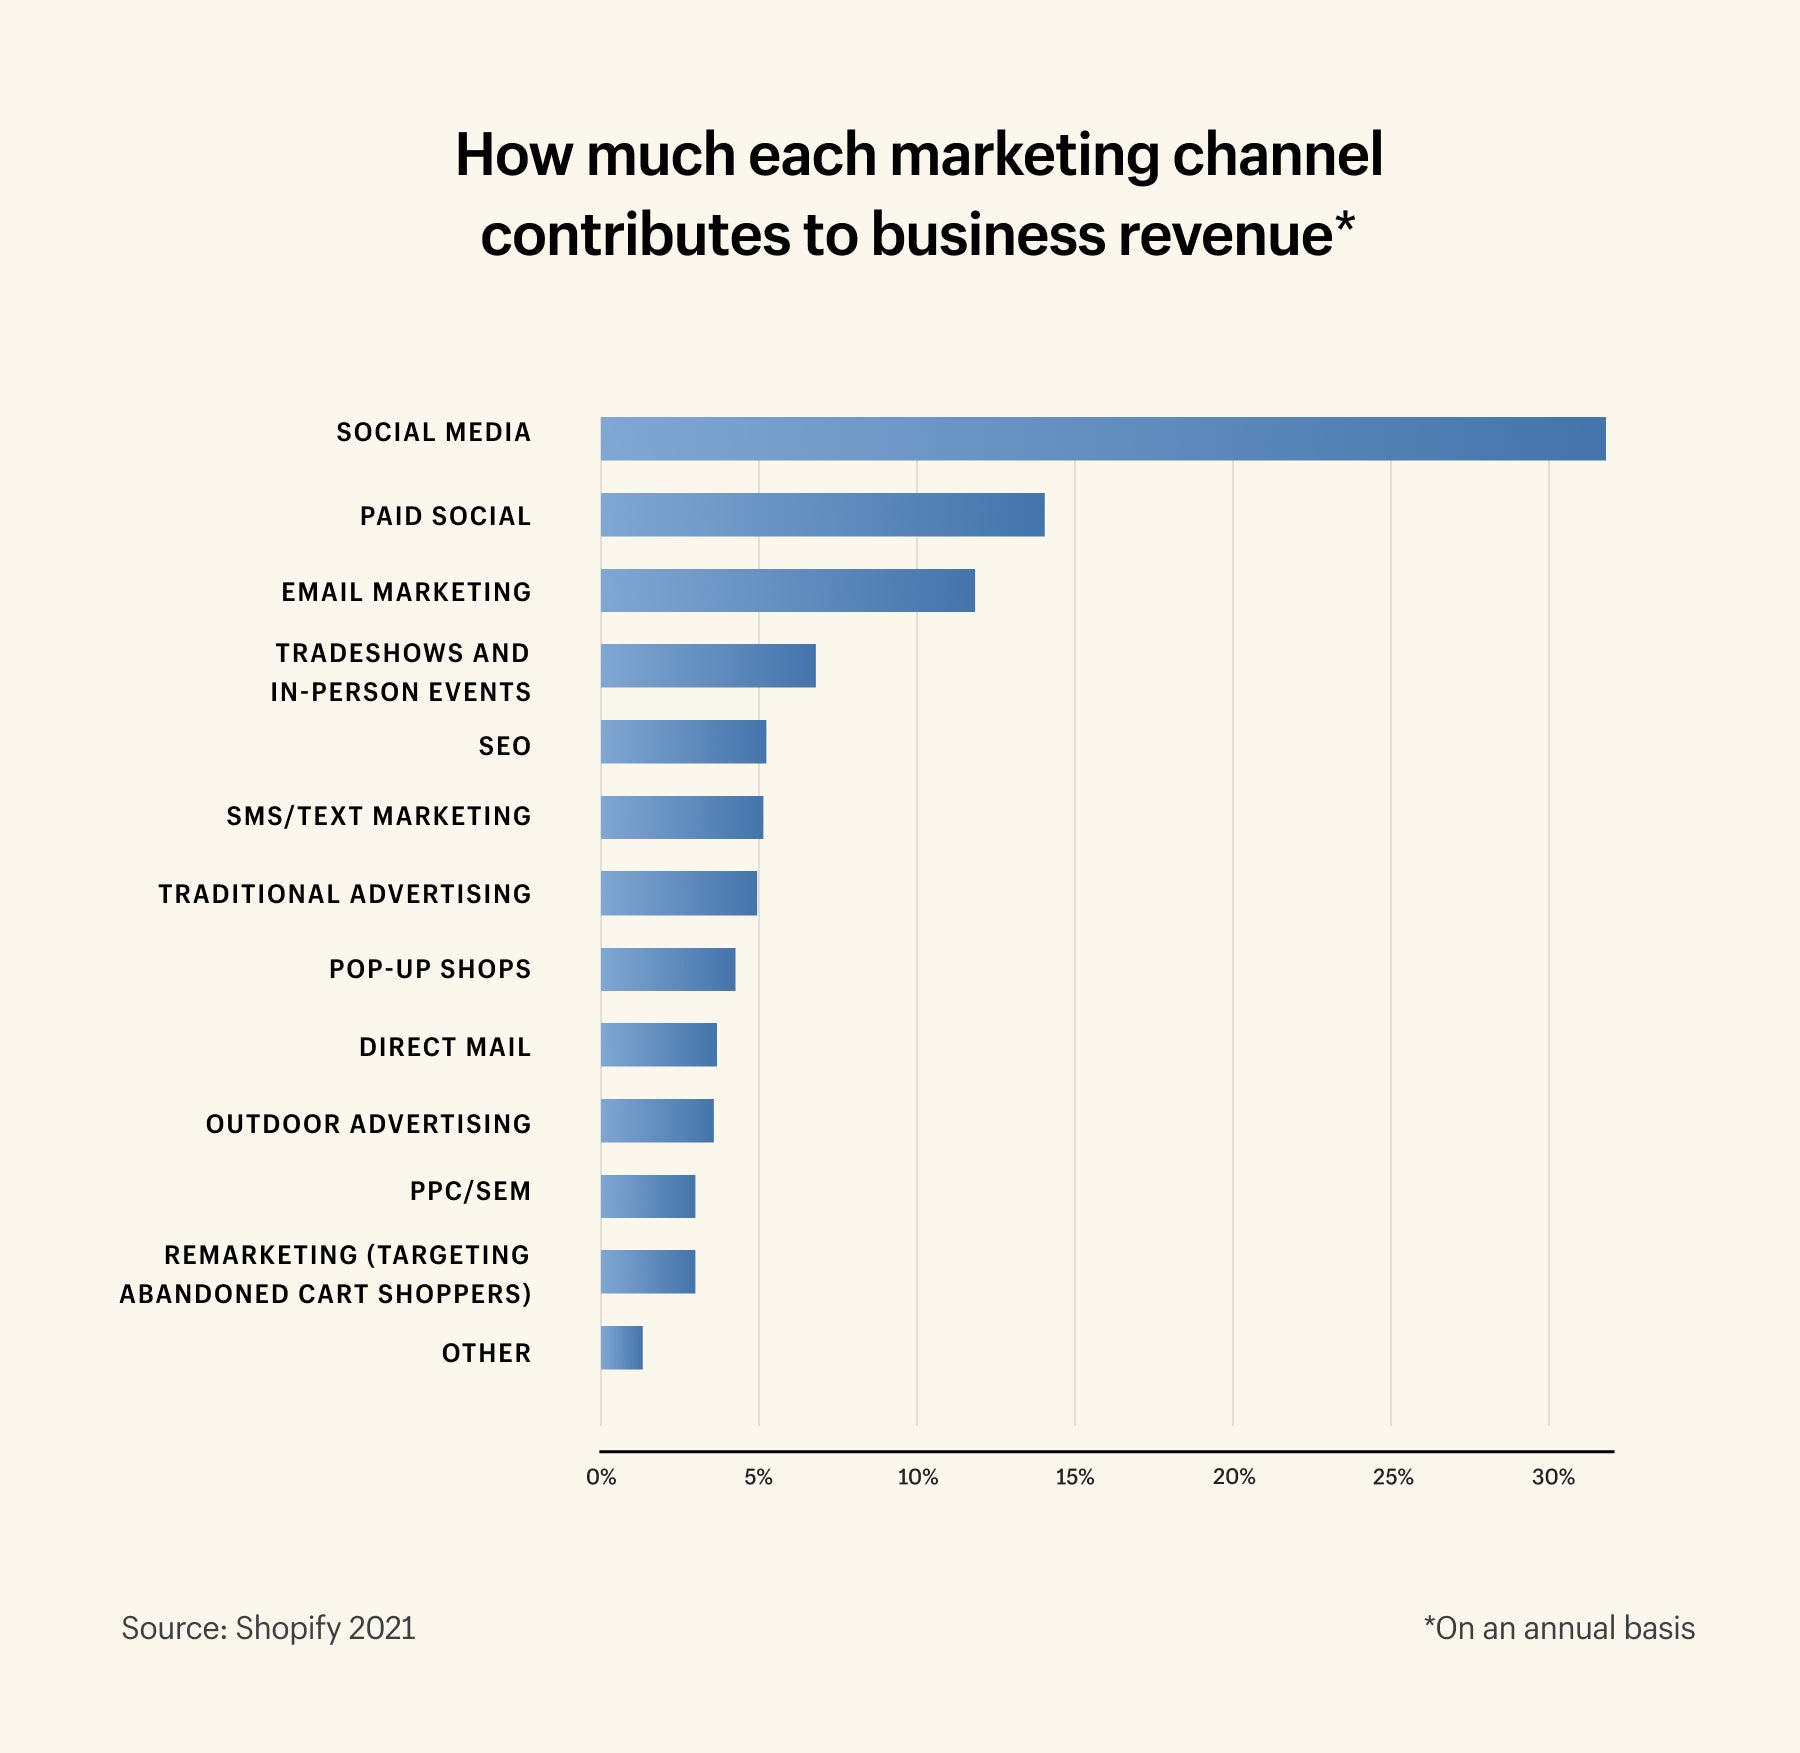 How each marketing channel contributed to overall business revenue as a percentage